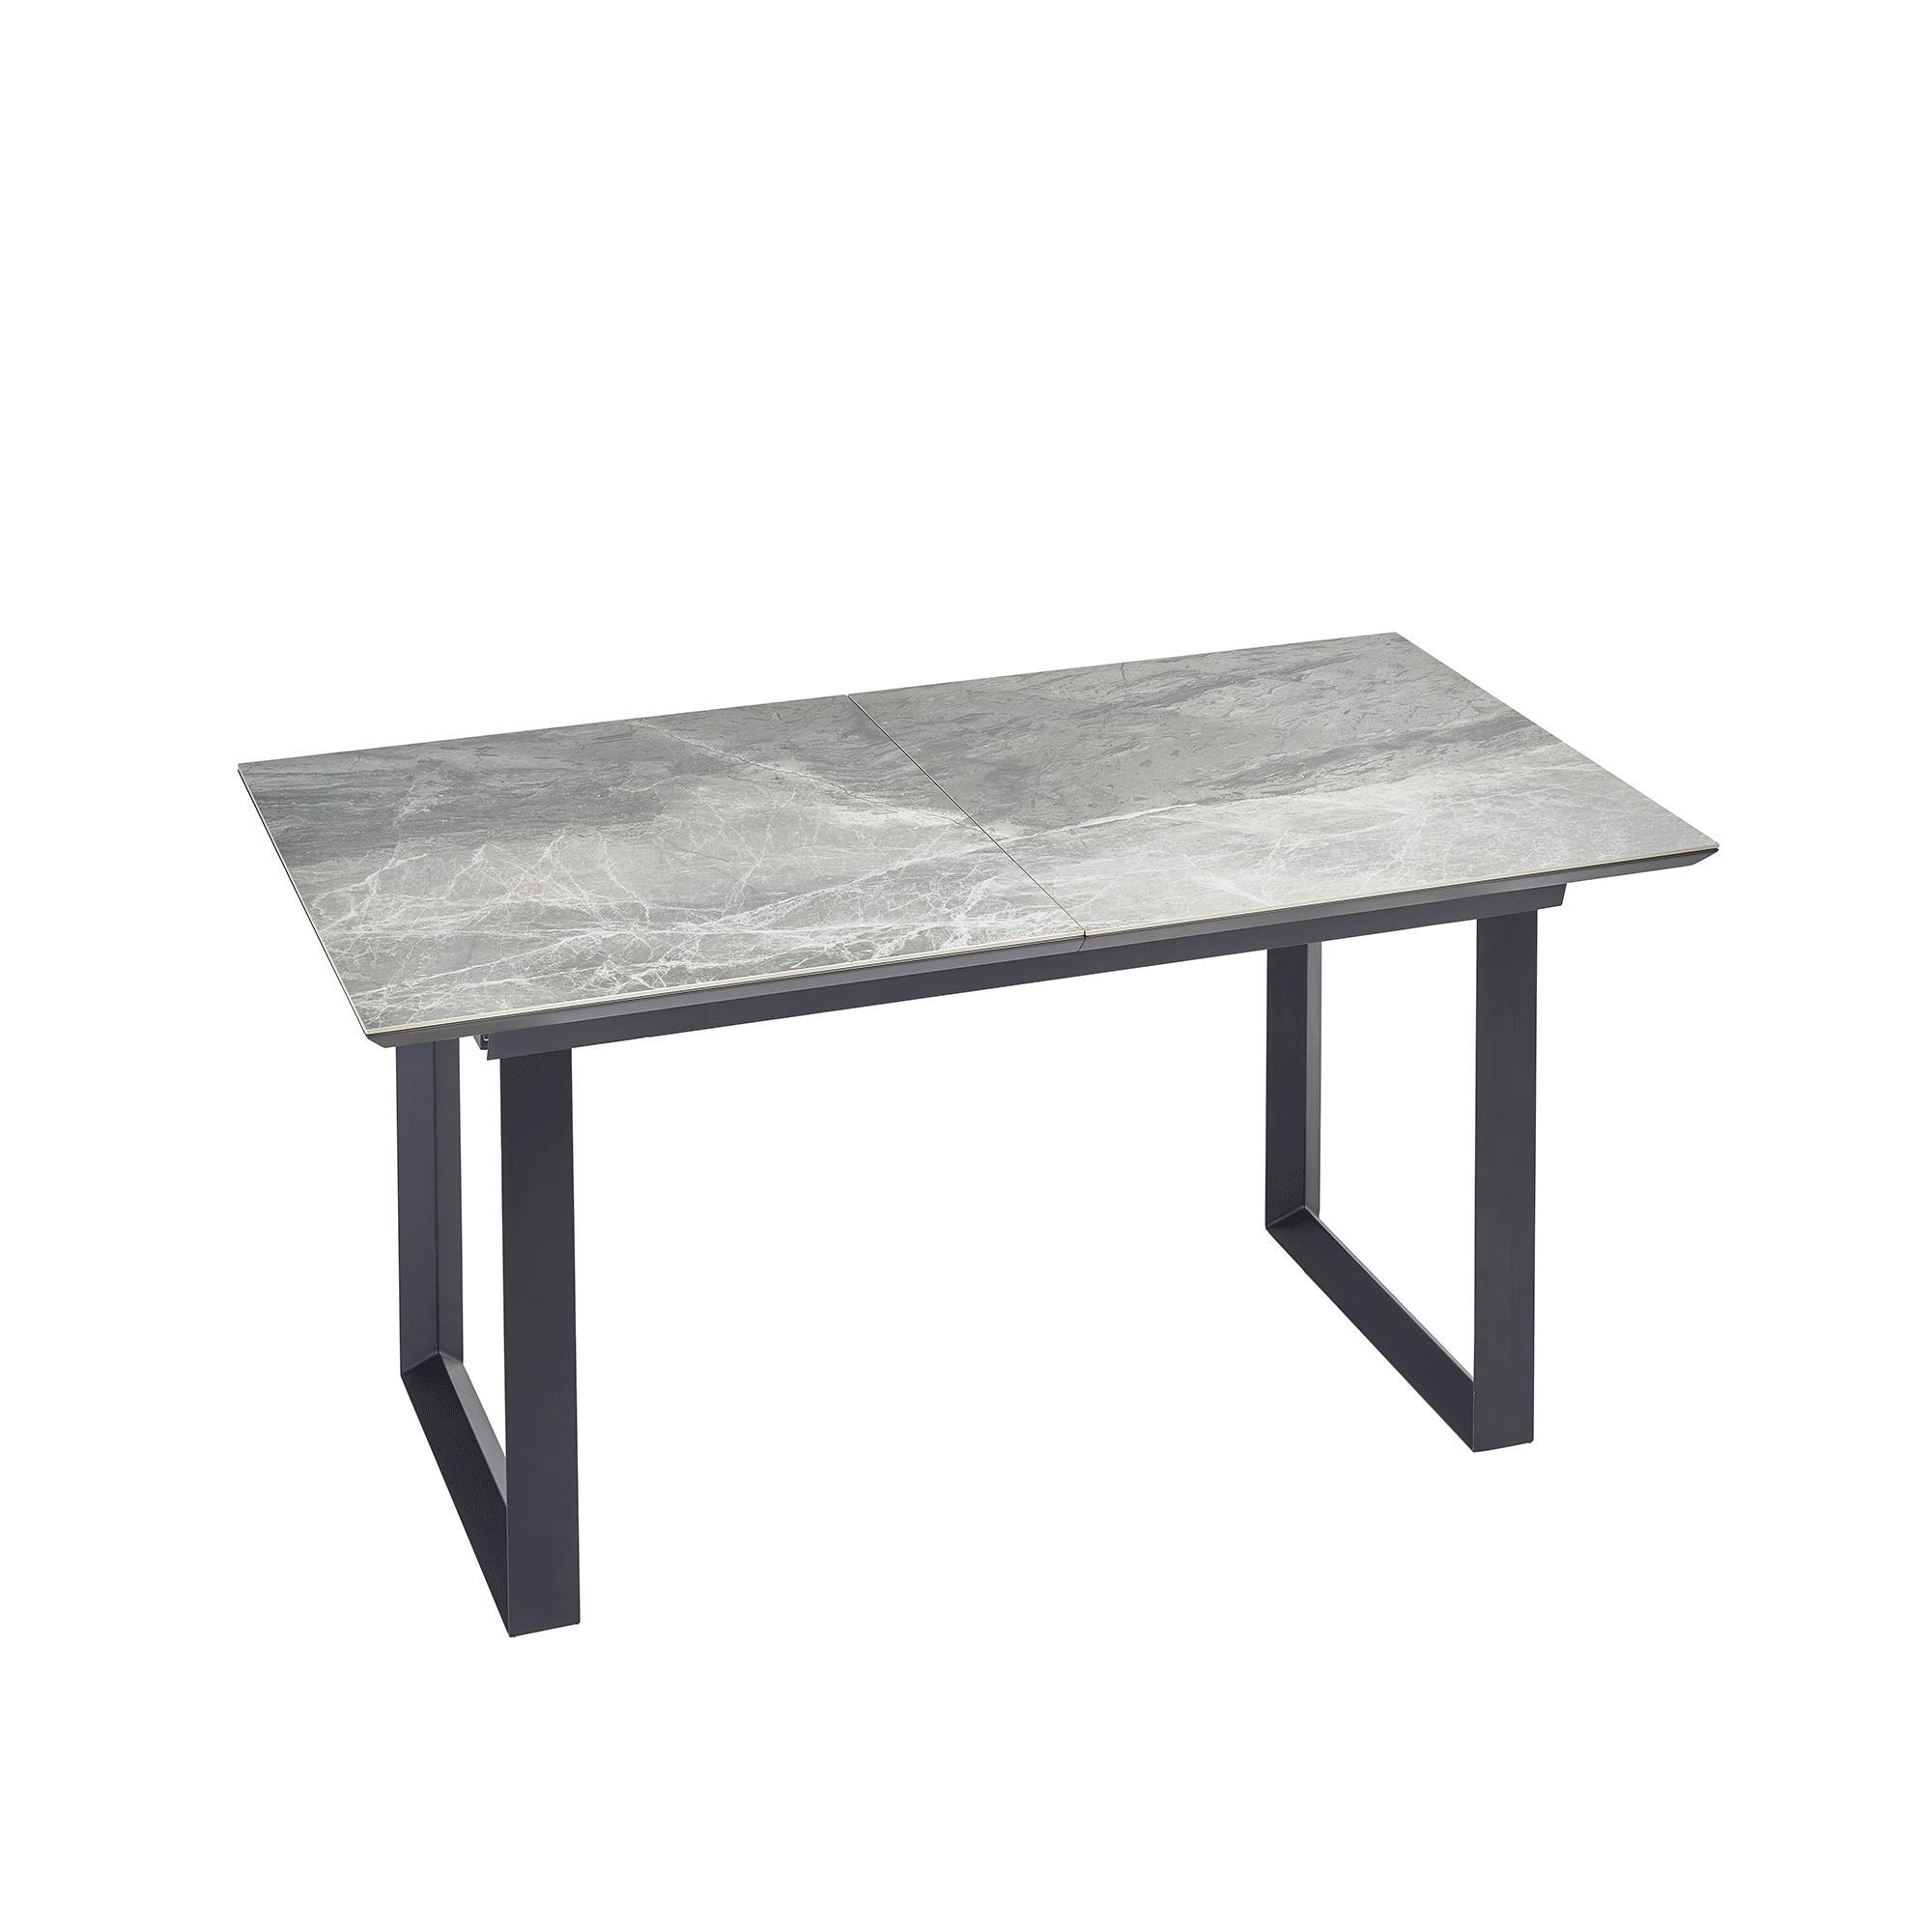 Teno ceramic marble extending 6-8 seater dining table grey